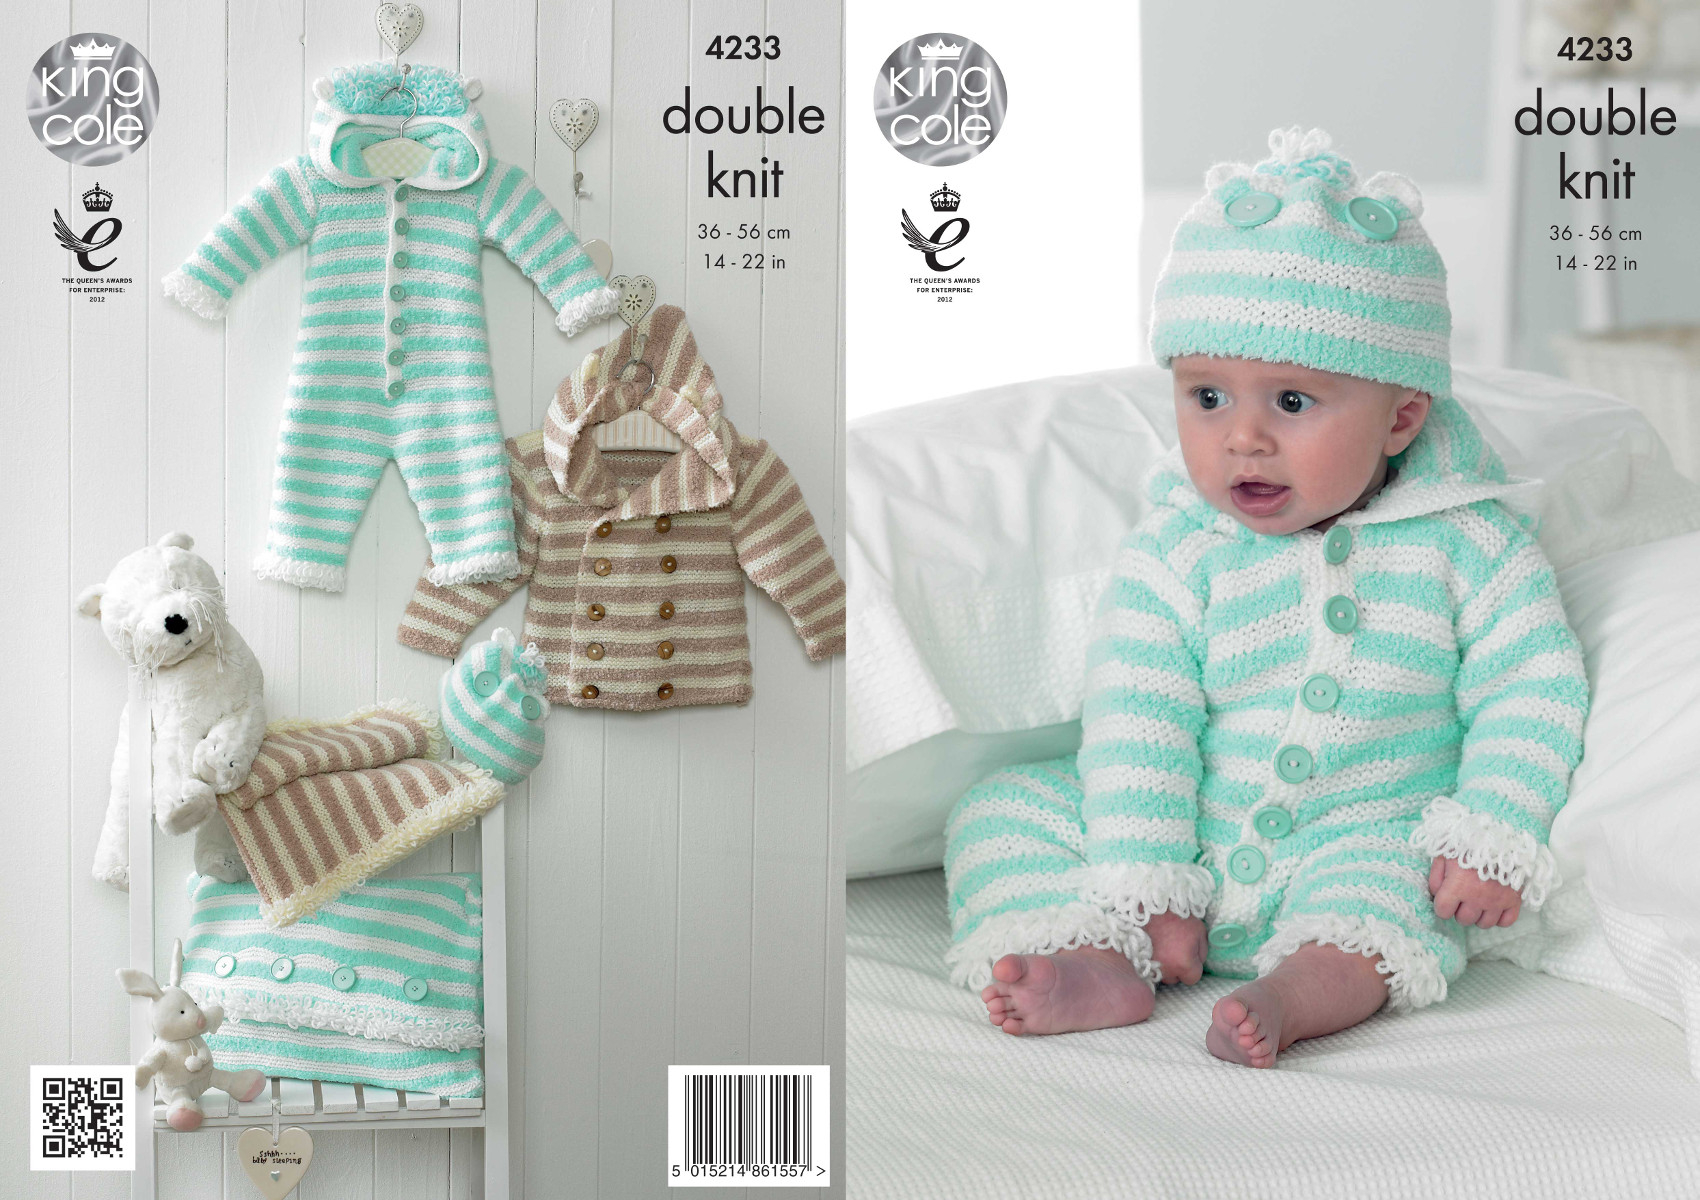 Baby Girl Blanket Knitting Patterns Details About Ba Knitting Pattern King Cole Dk Jumpsuit Coat Hat Blanket Cushion Cover 4233